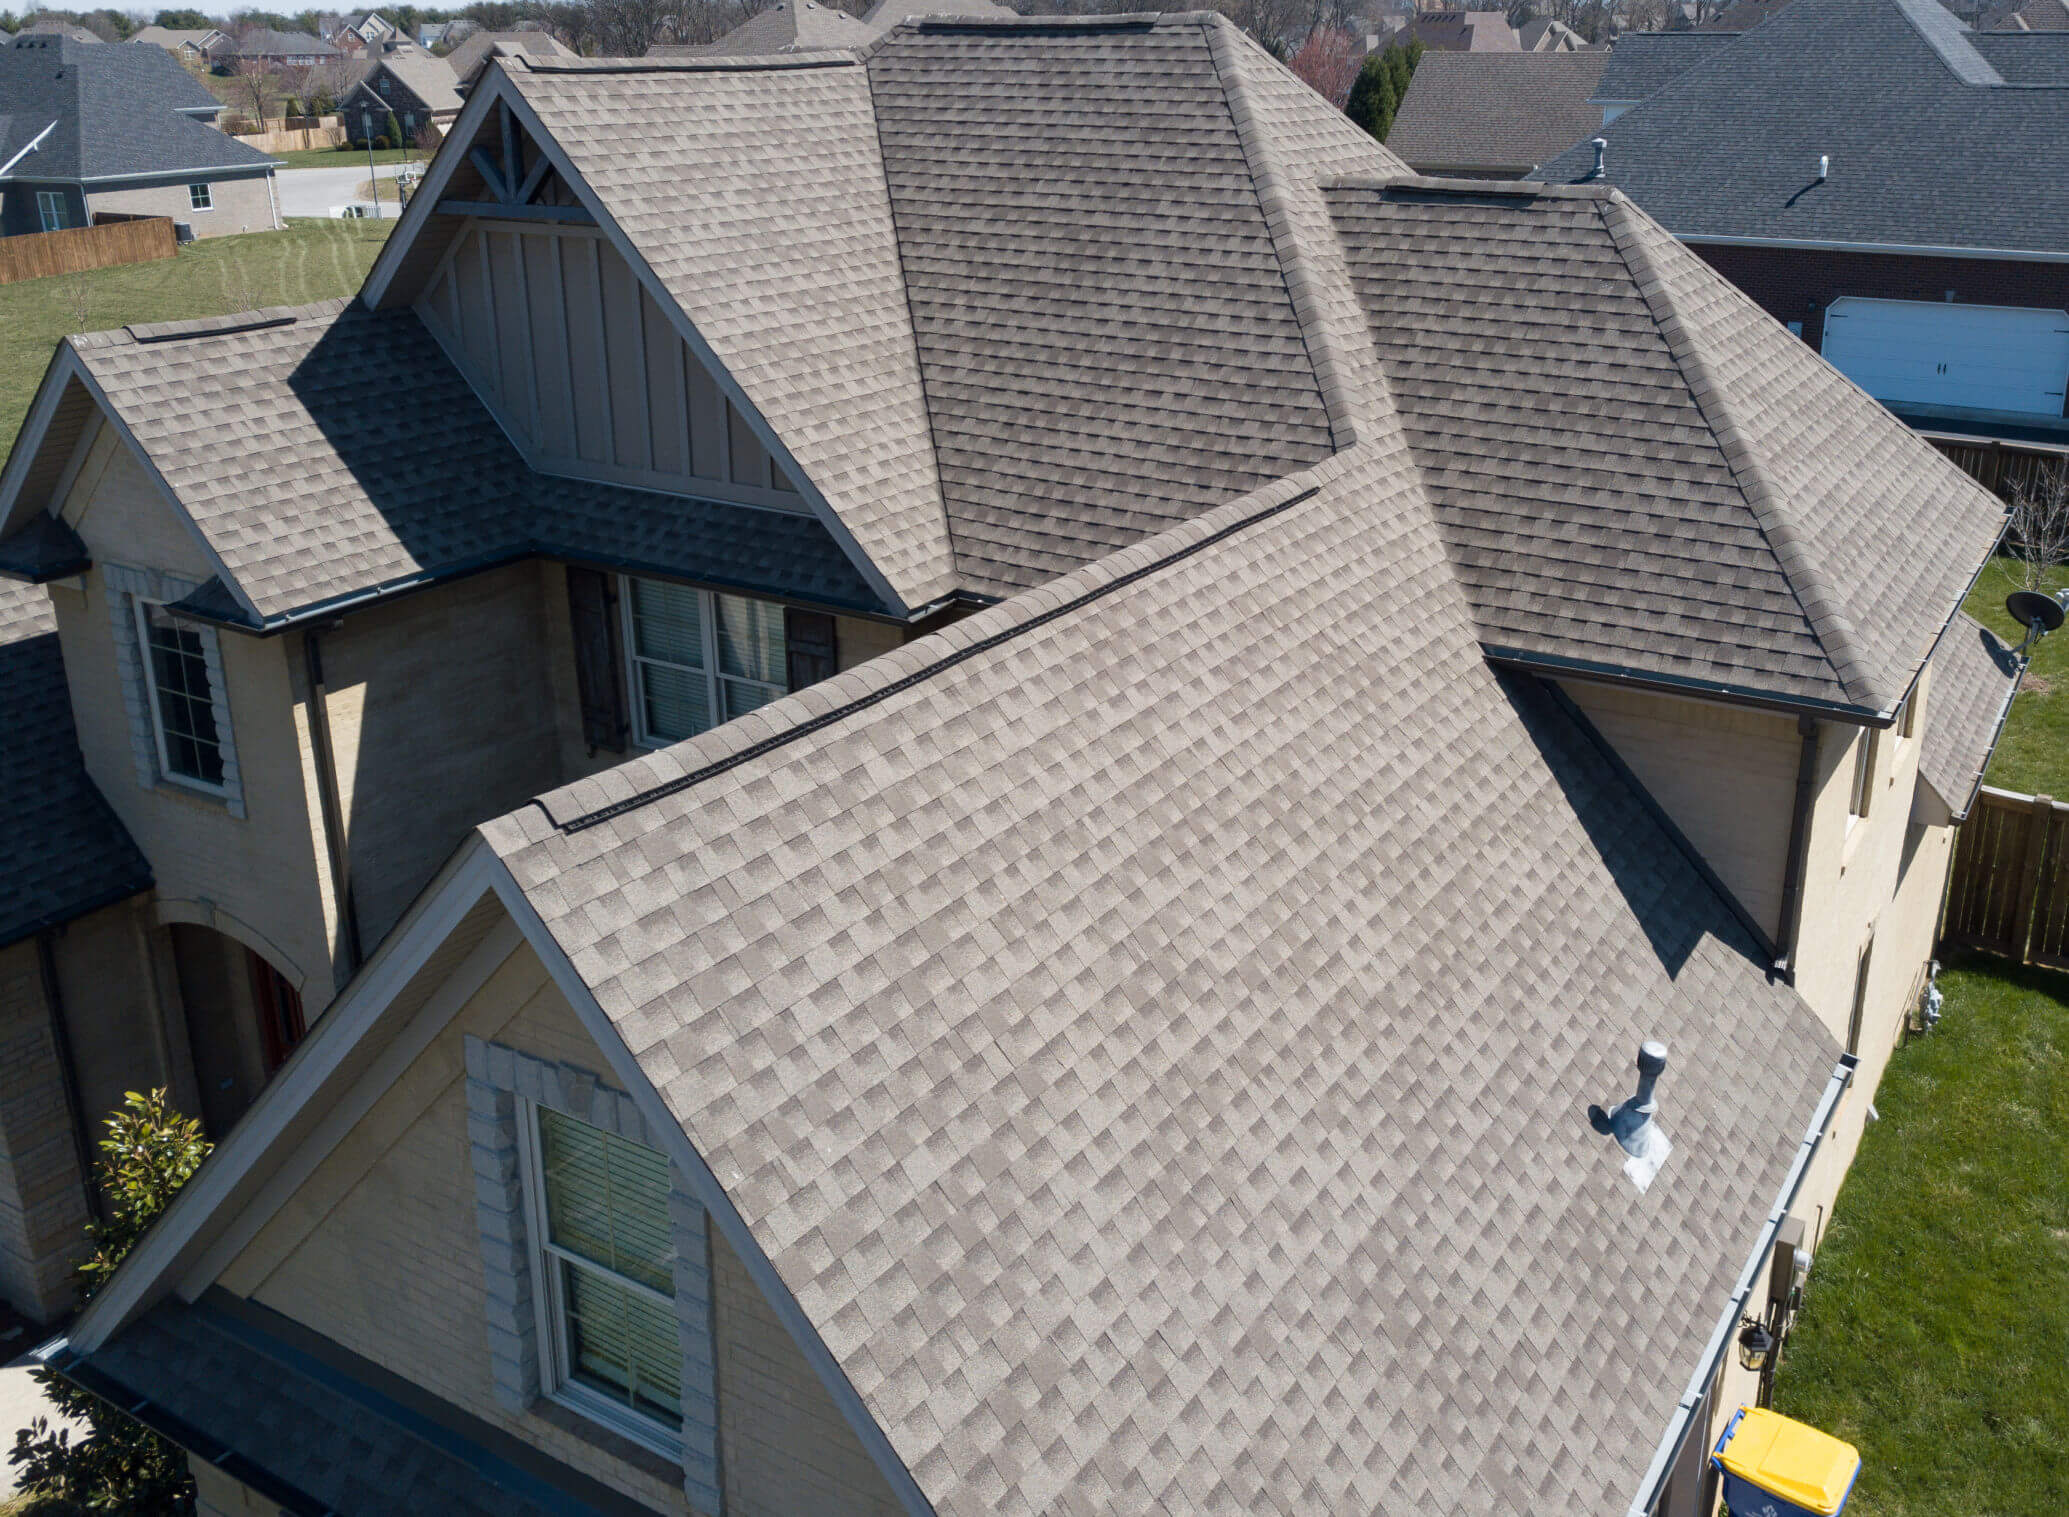 A complete residential roof